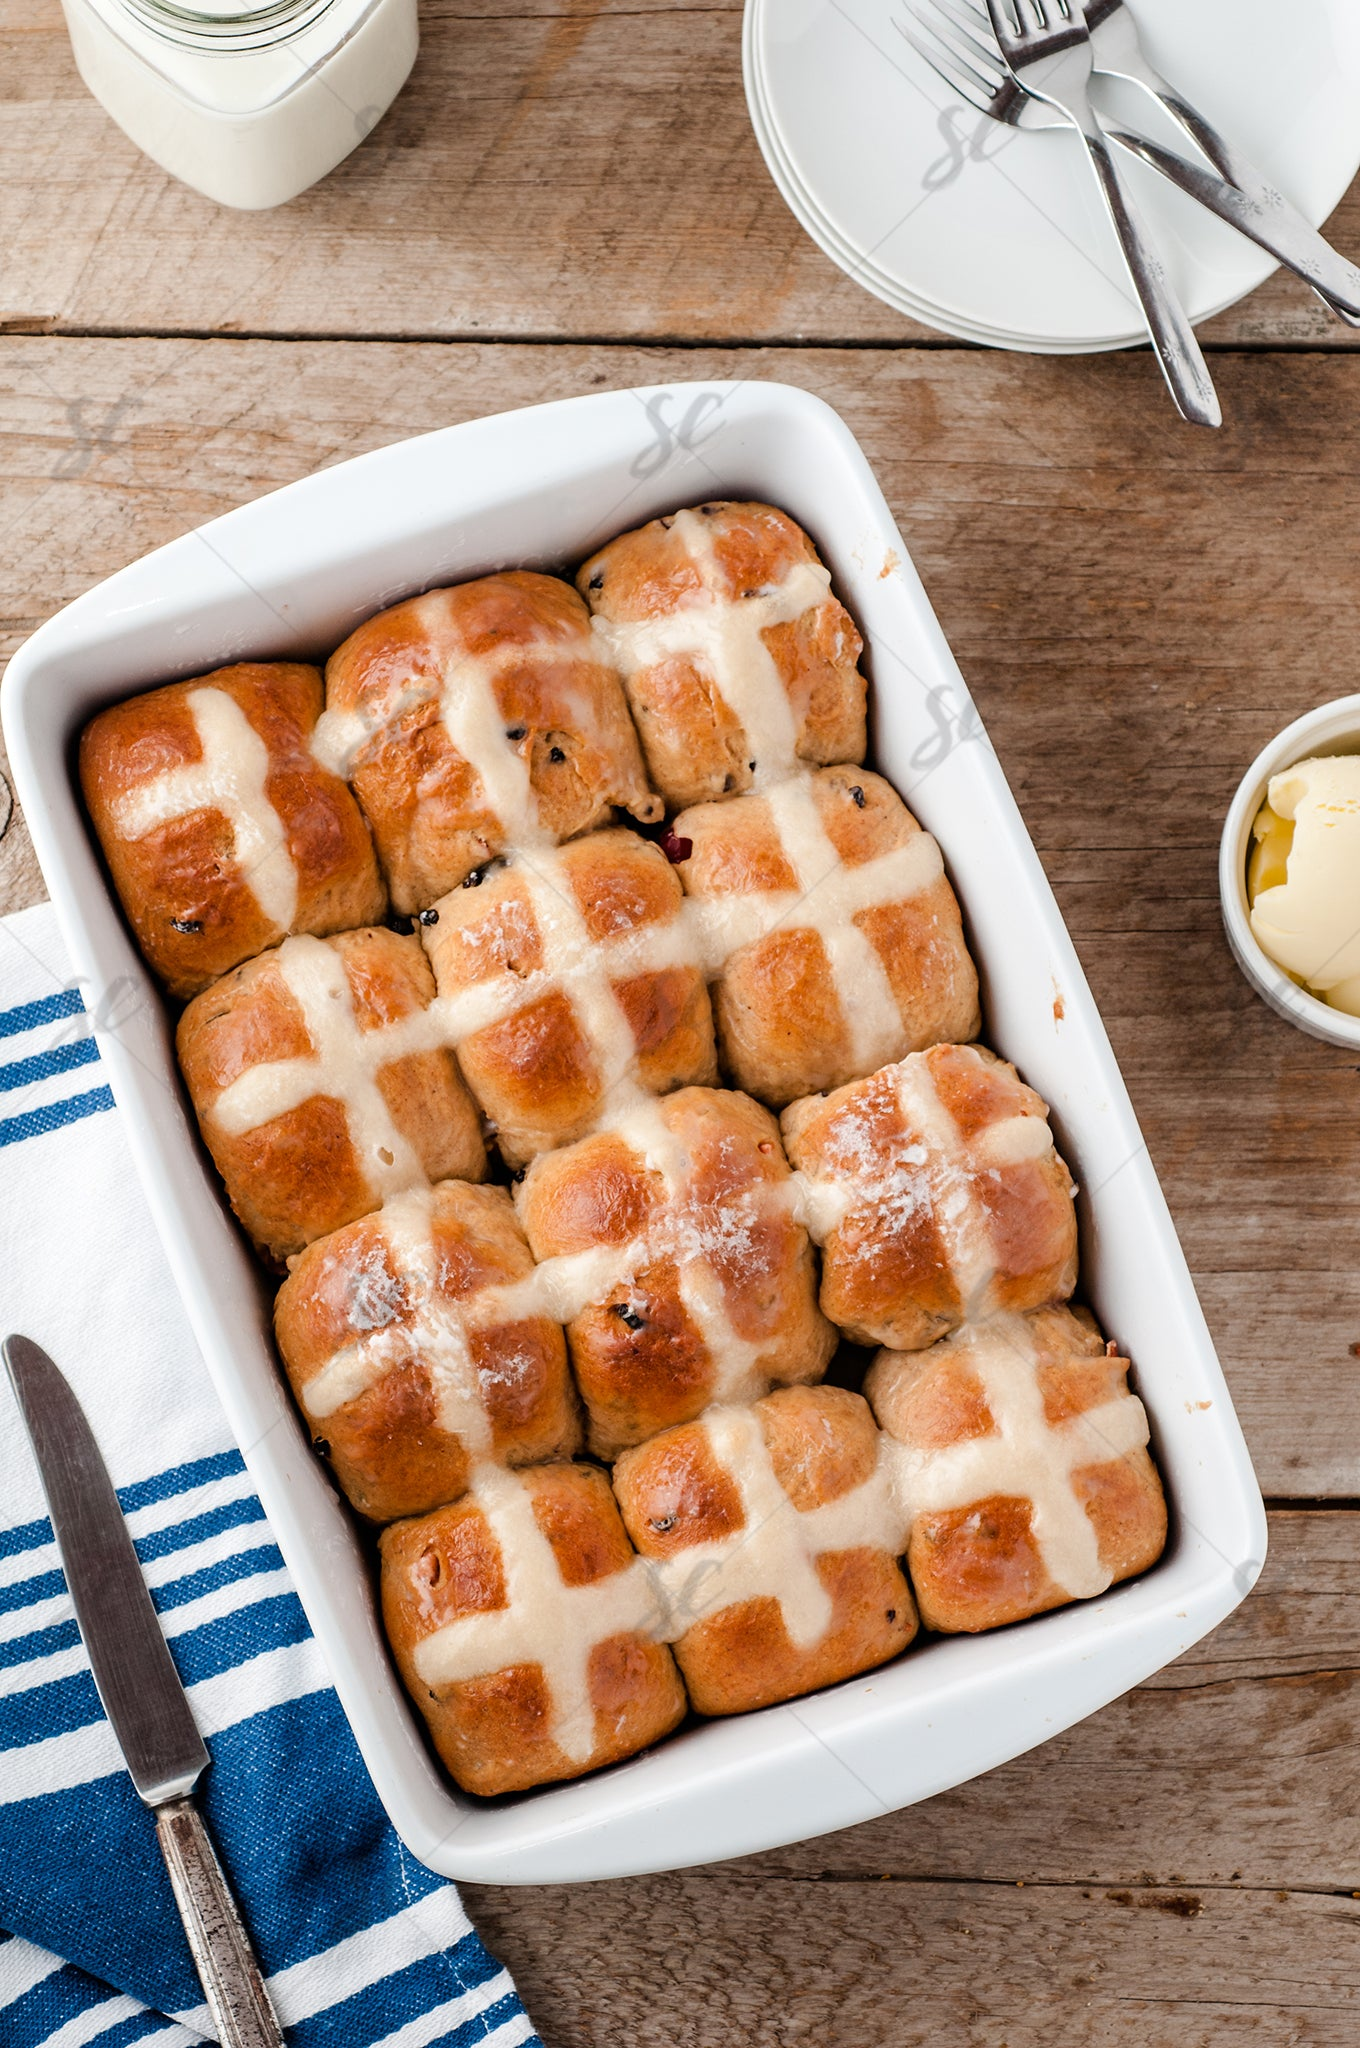 Hot Cross Buns - 1/3